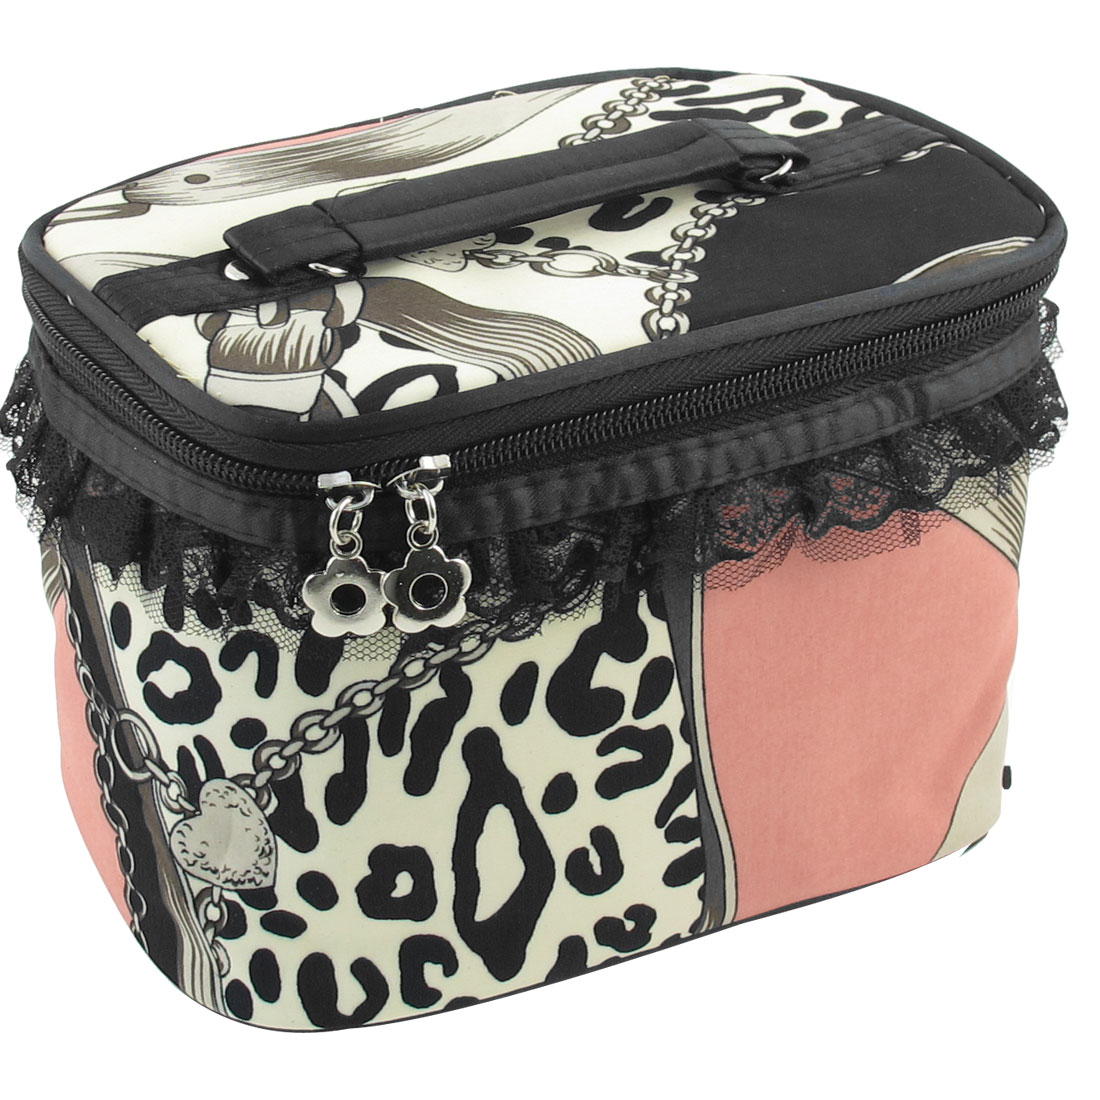 Muticolor Leopard Print Pattern Zipper Closure Cosmetic Bag Case